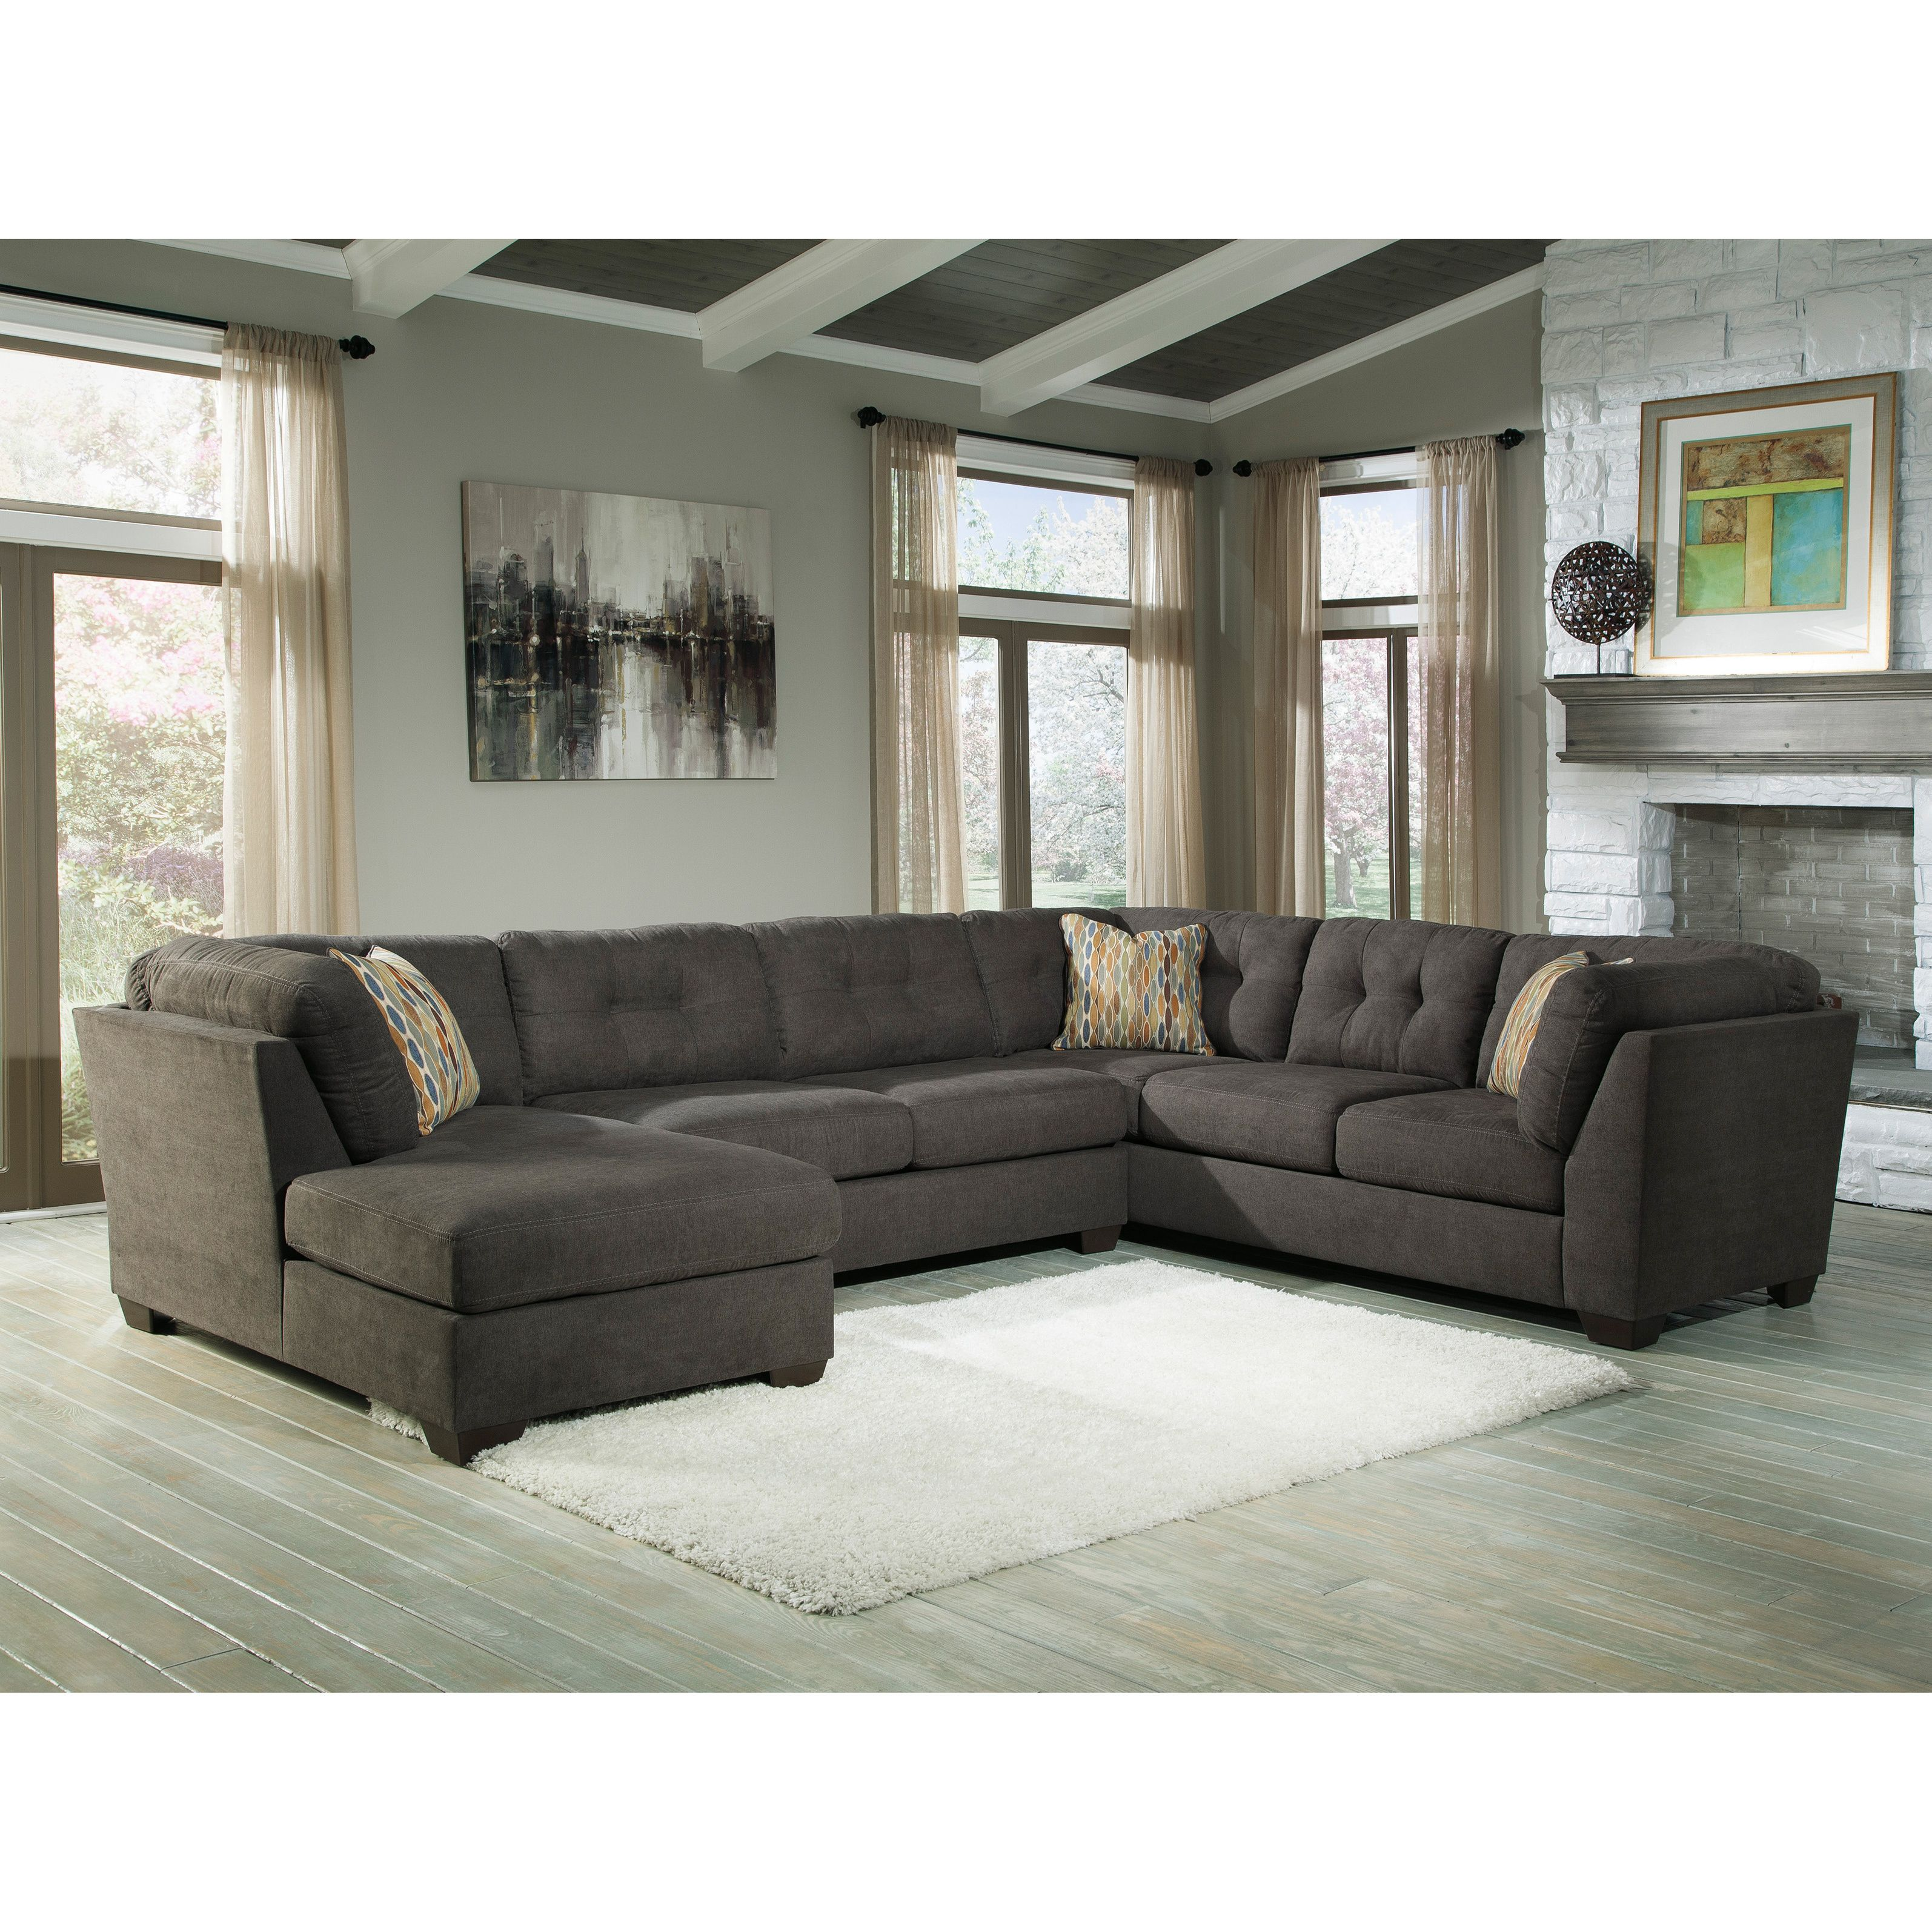 photo nice jayceon gray signature furniture of ashley attractive piece chaise with att item look sectional x number design